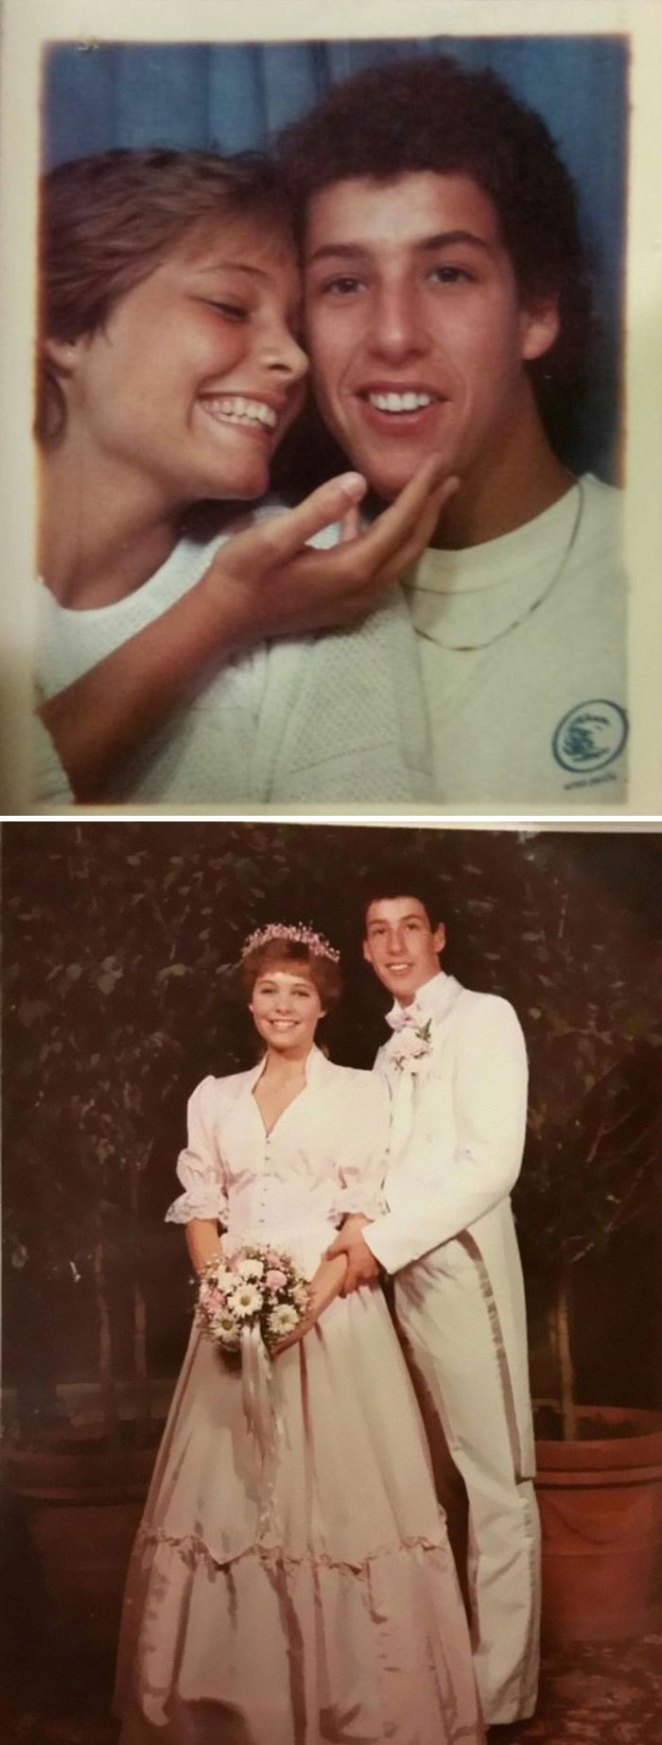 My Mom Dated Adam Sandler In High School. Here Are Her Prom Pics